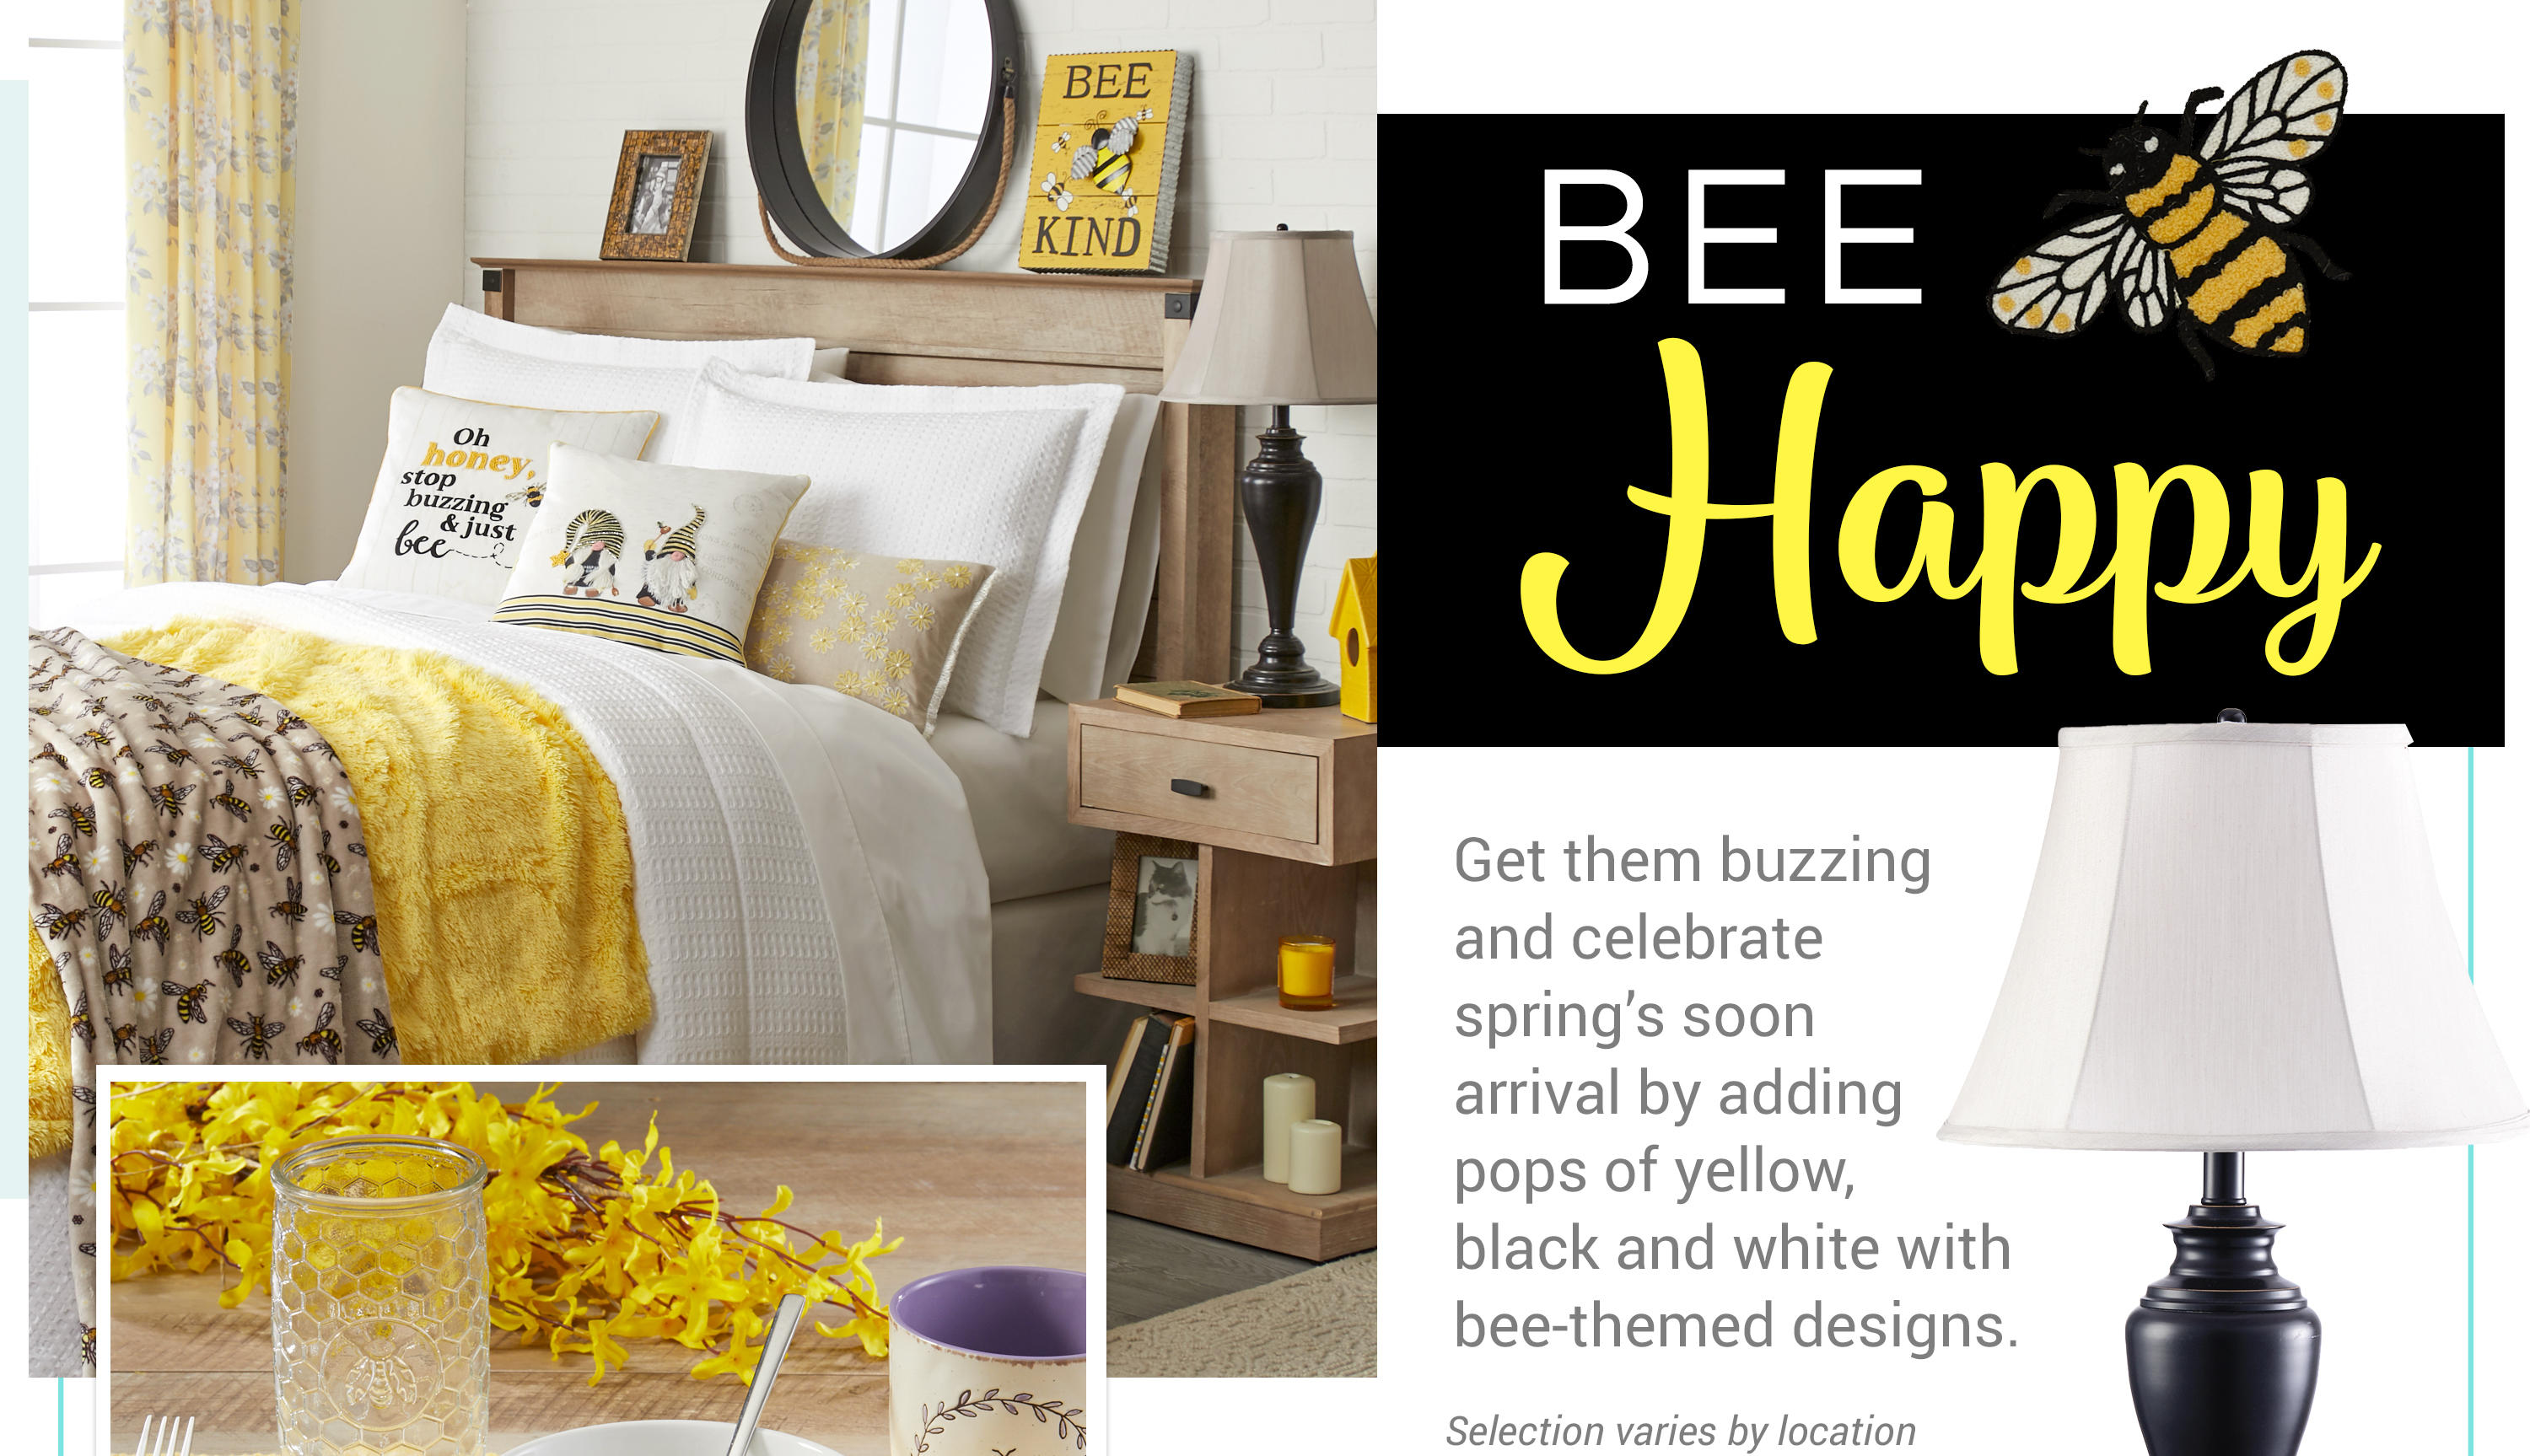 Bee Happy - Get them buzzing and celebrate spring's soon arrival by adding pops of yellow, black and white with bee-themed designs.